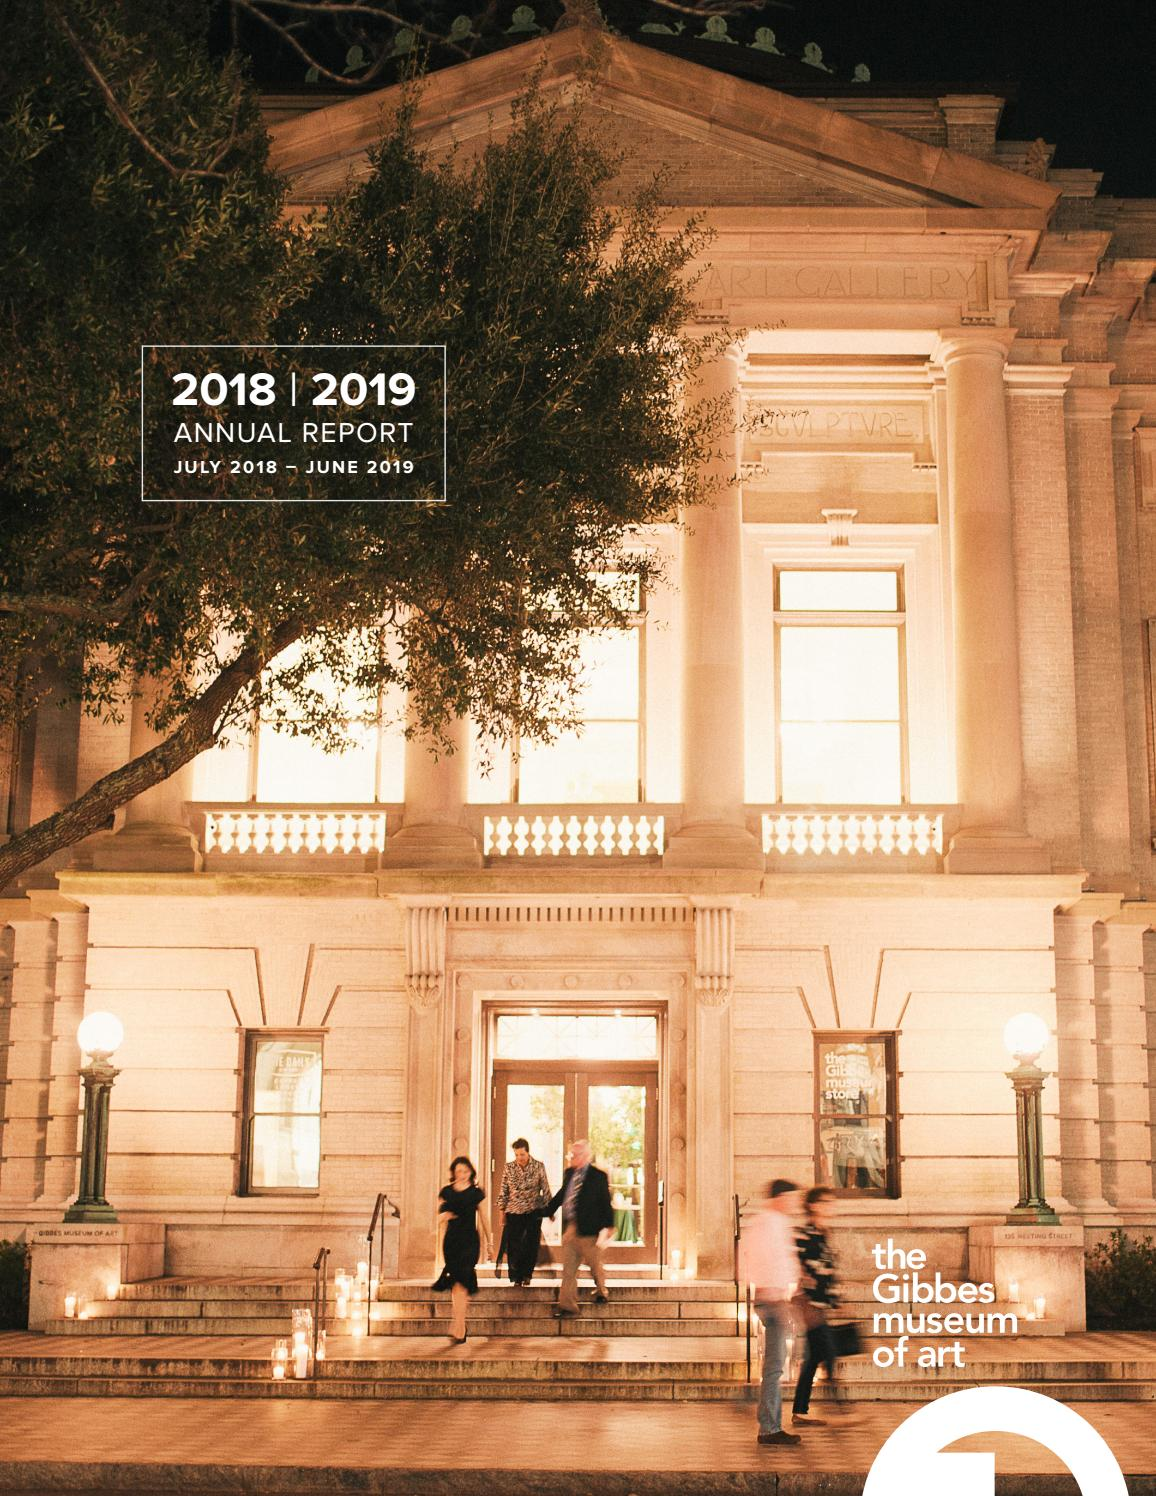 Gibbes Museum Of Art Annual Report 2019 By Gibbes Museum Of Art Issuu